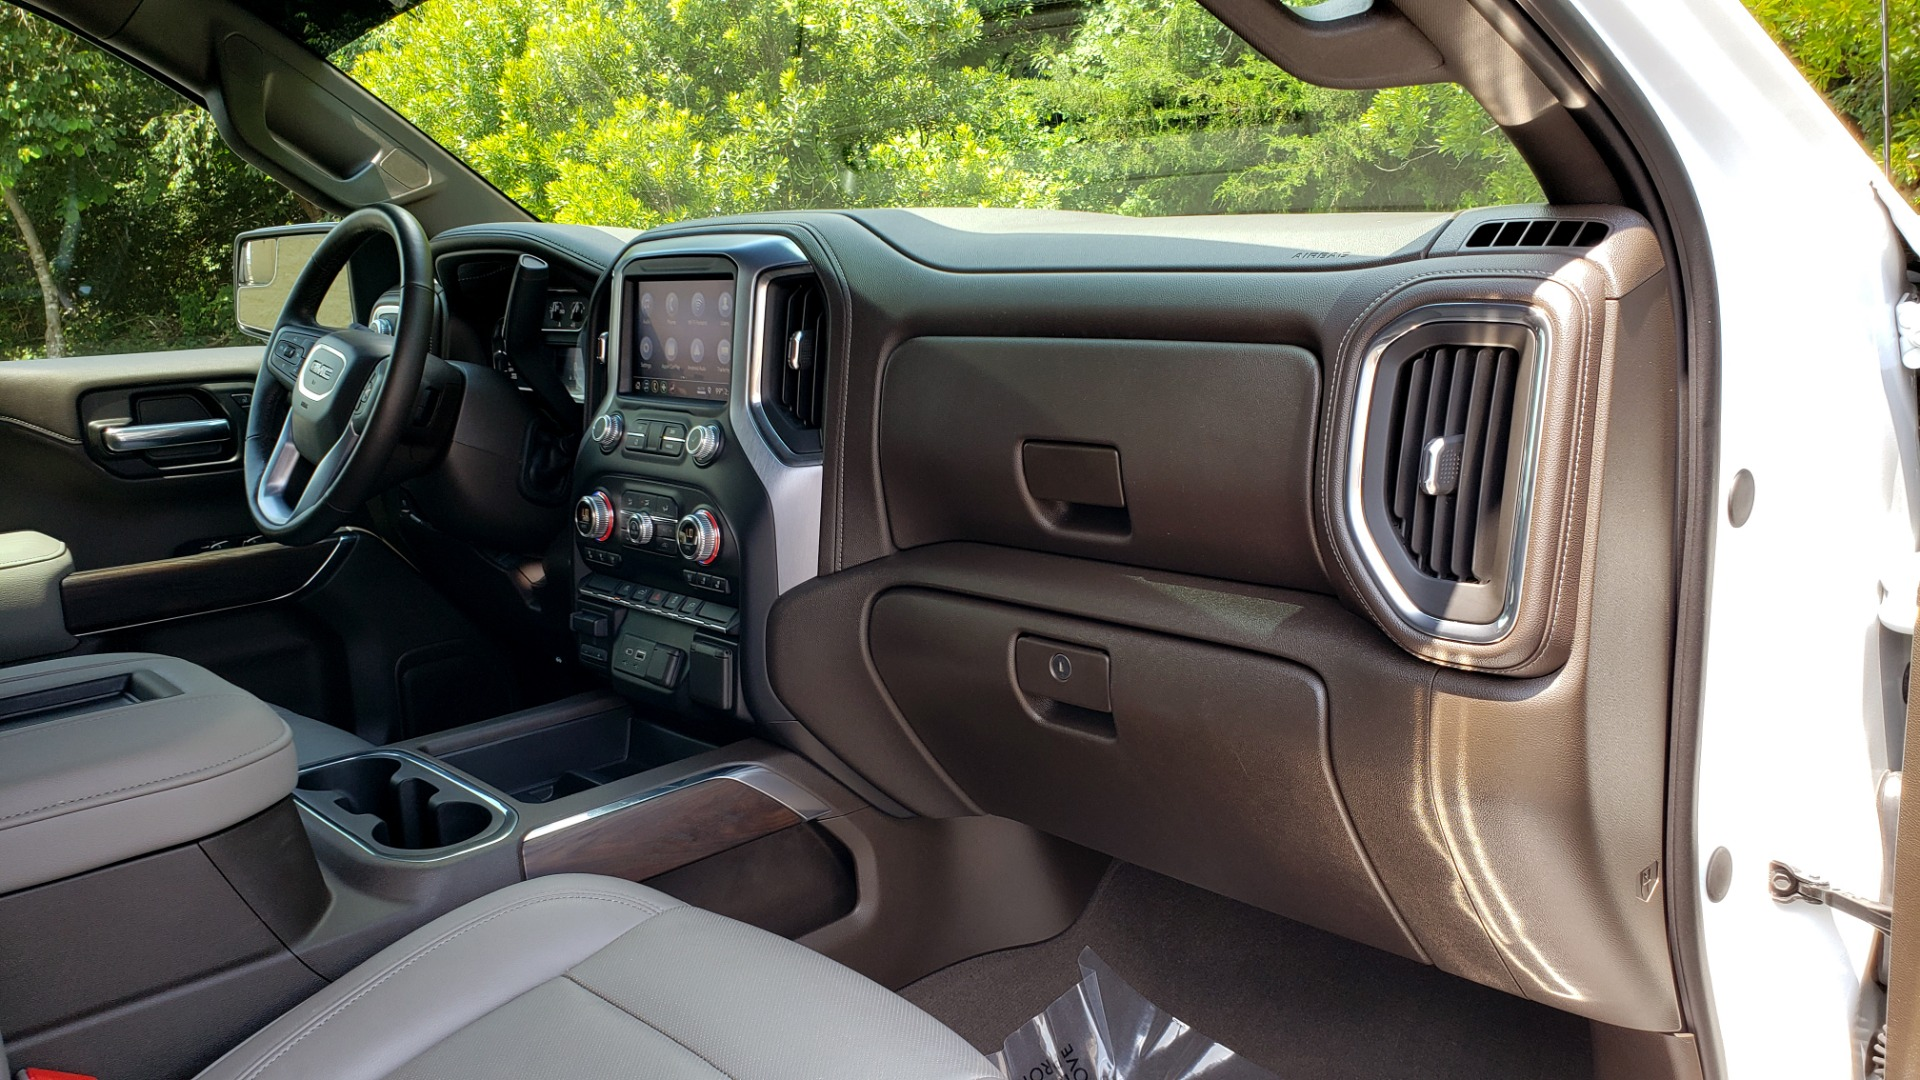 Used 2019 GMC SIERRA 1500 SLT 4WD CREWCAB / PREMIUM / 6.2L V8 / NAV / SUNROOF / VENT SEATS for sale Sold at Formula Imports in Charlotte NC 28227 75